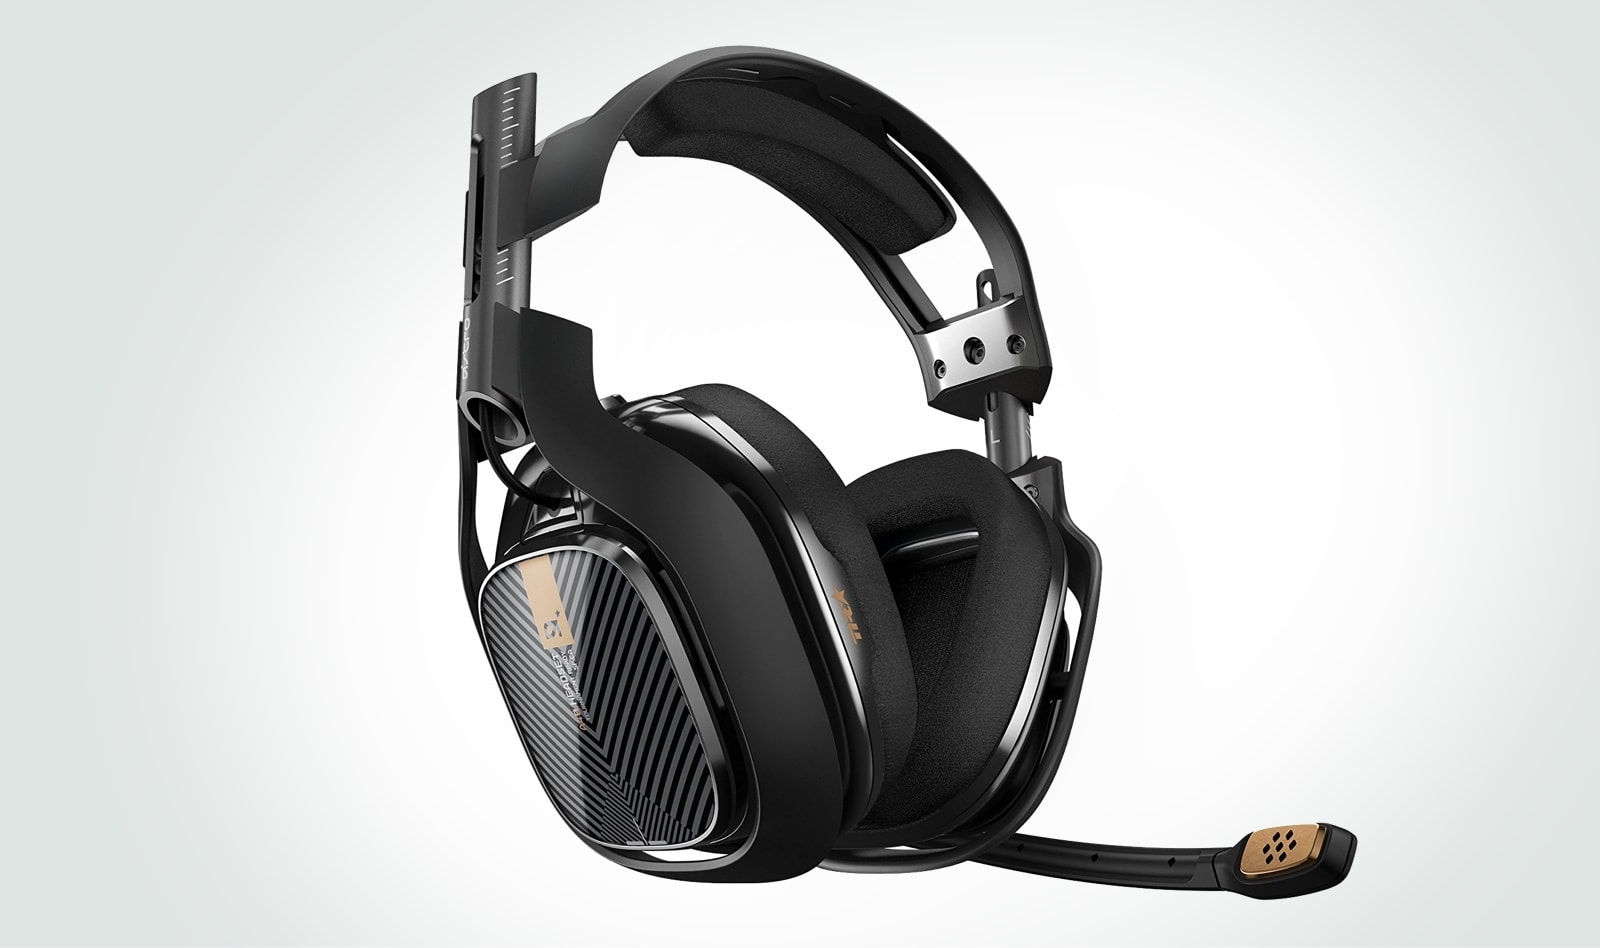 ef1486a07c9 Rekt Your Opponents: Best Gaming Headsets 2017 - Headphonesty